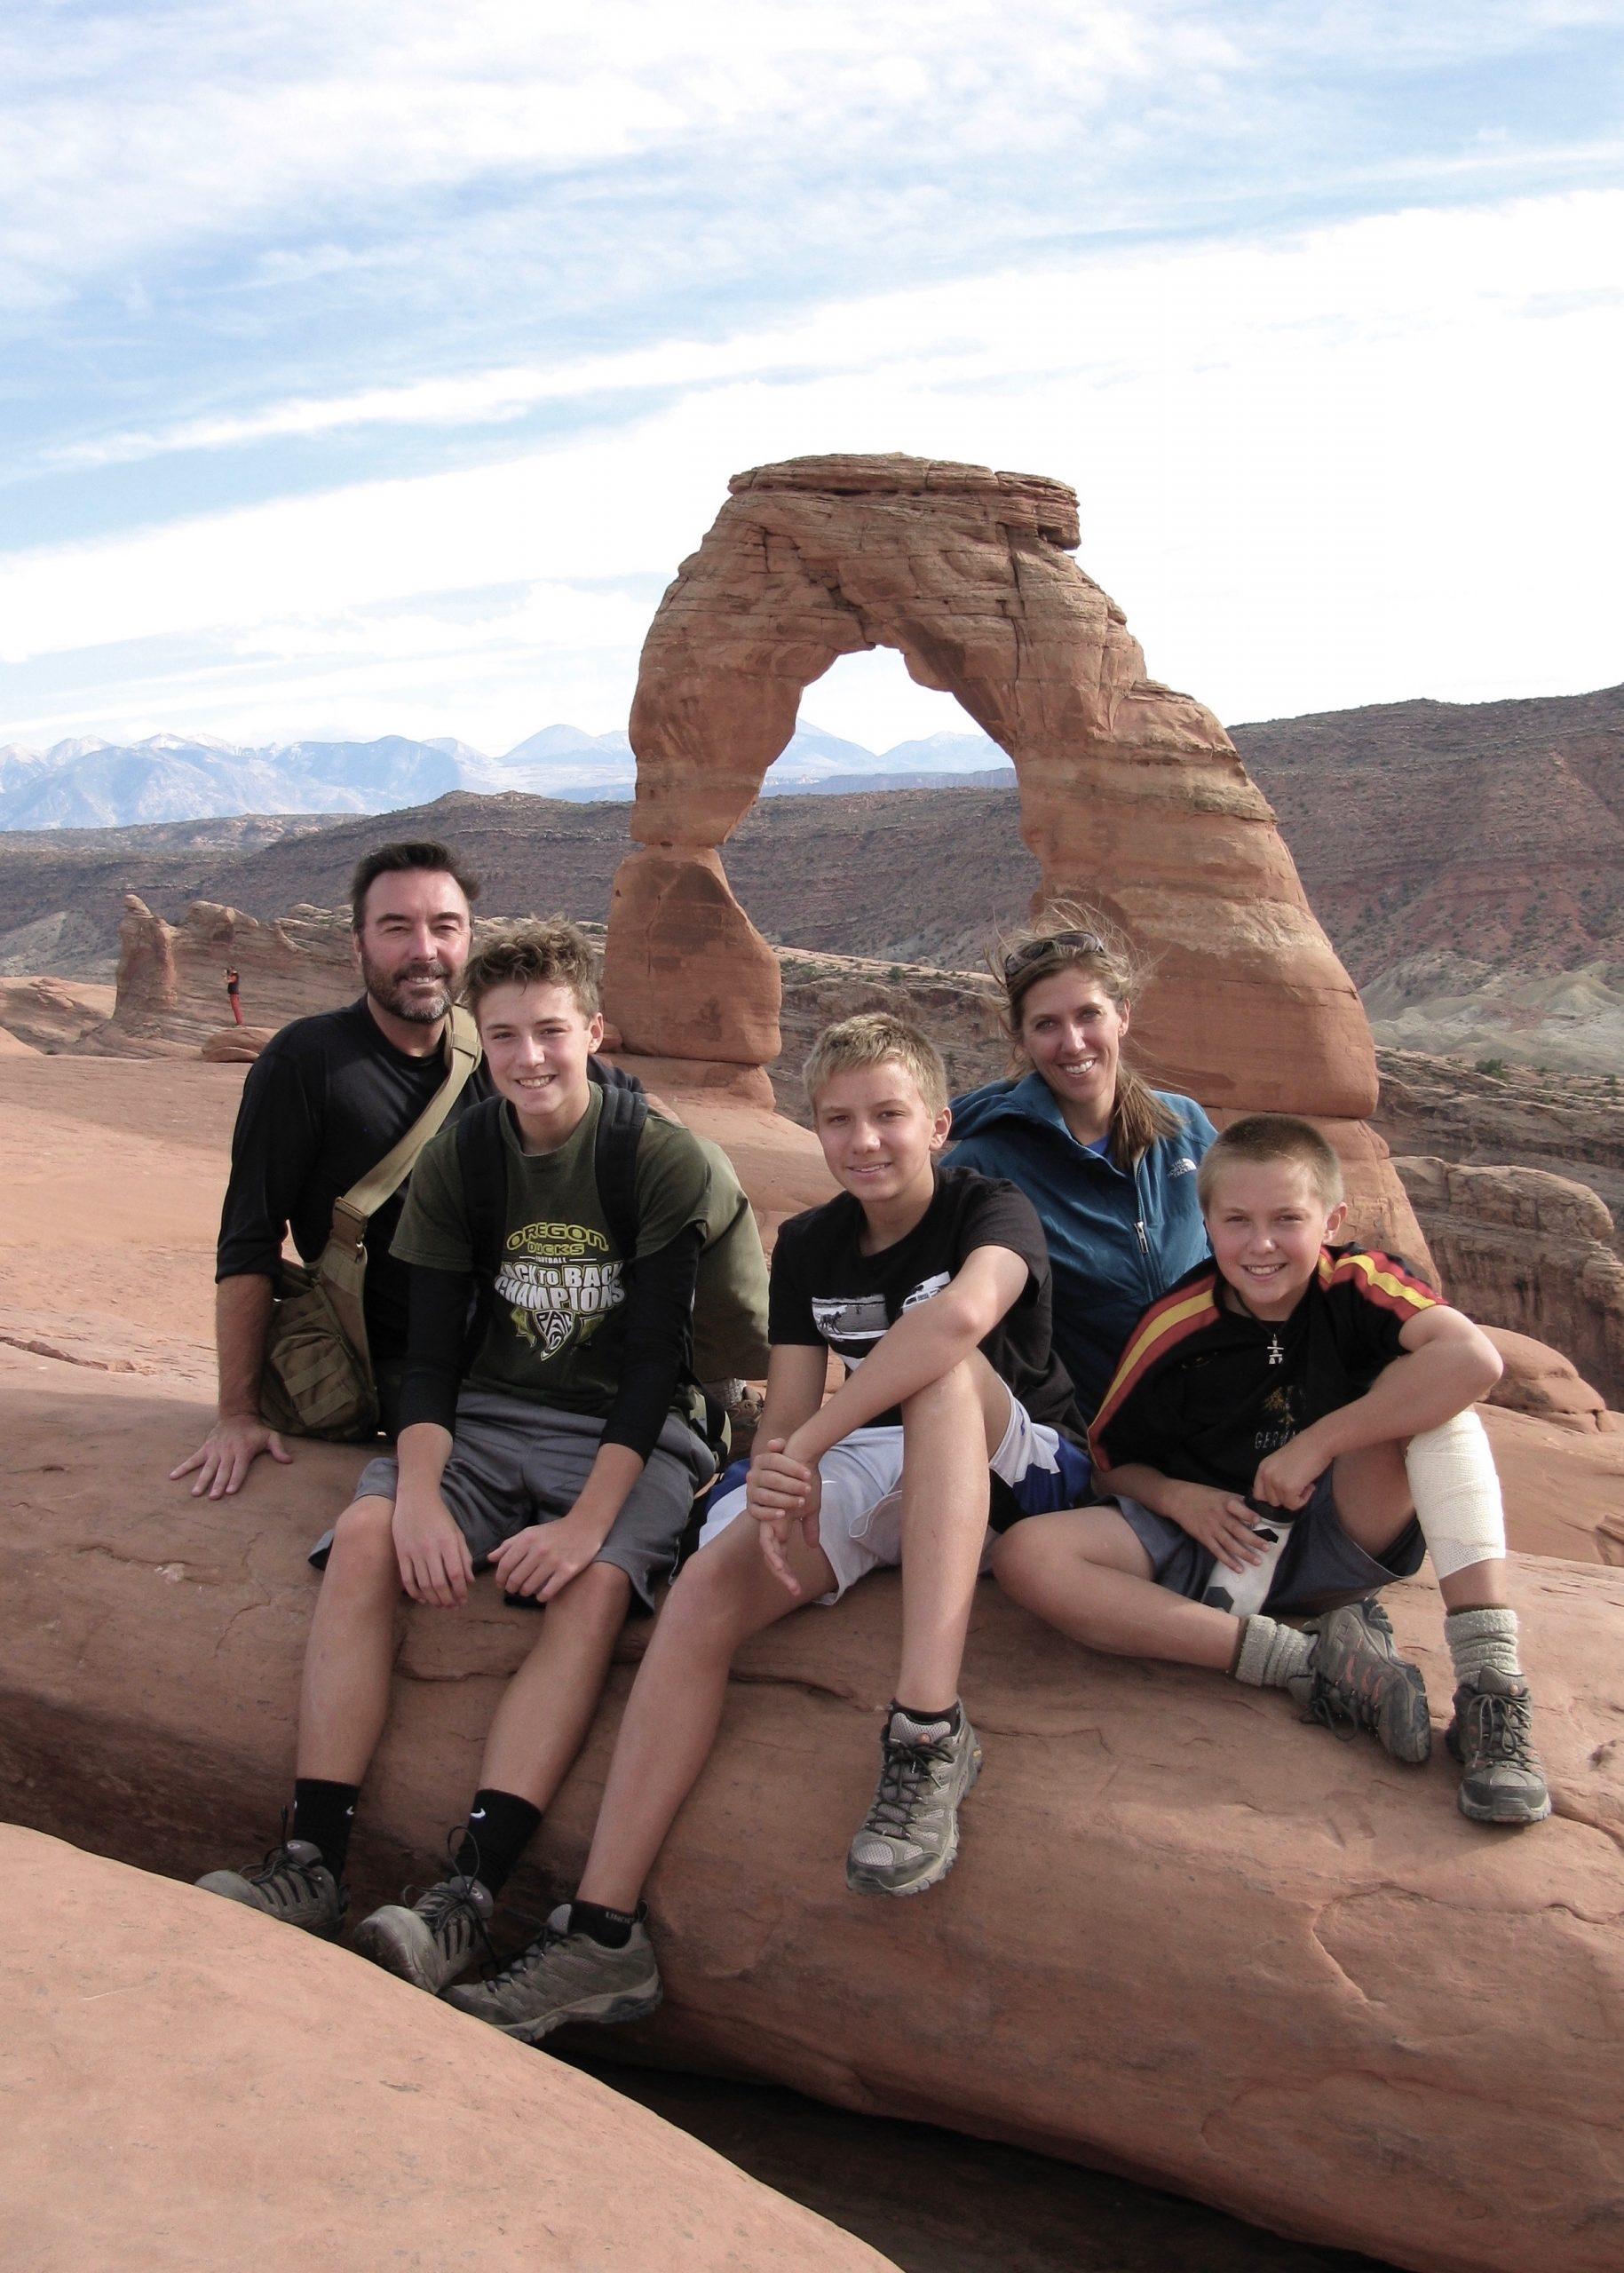 At Arches National Park, 2012.